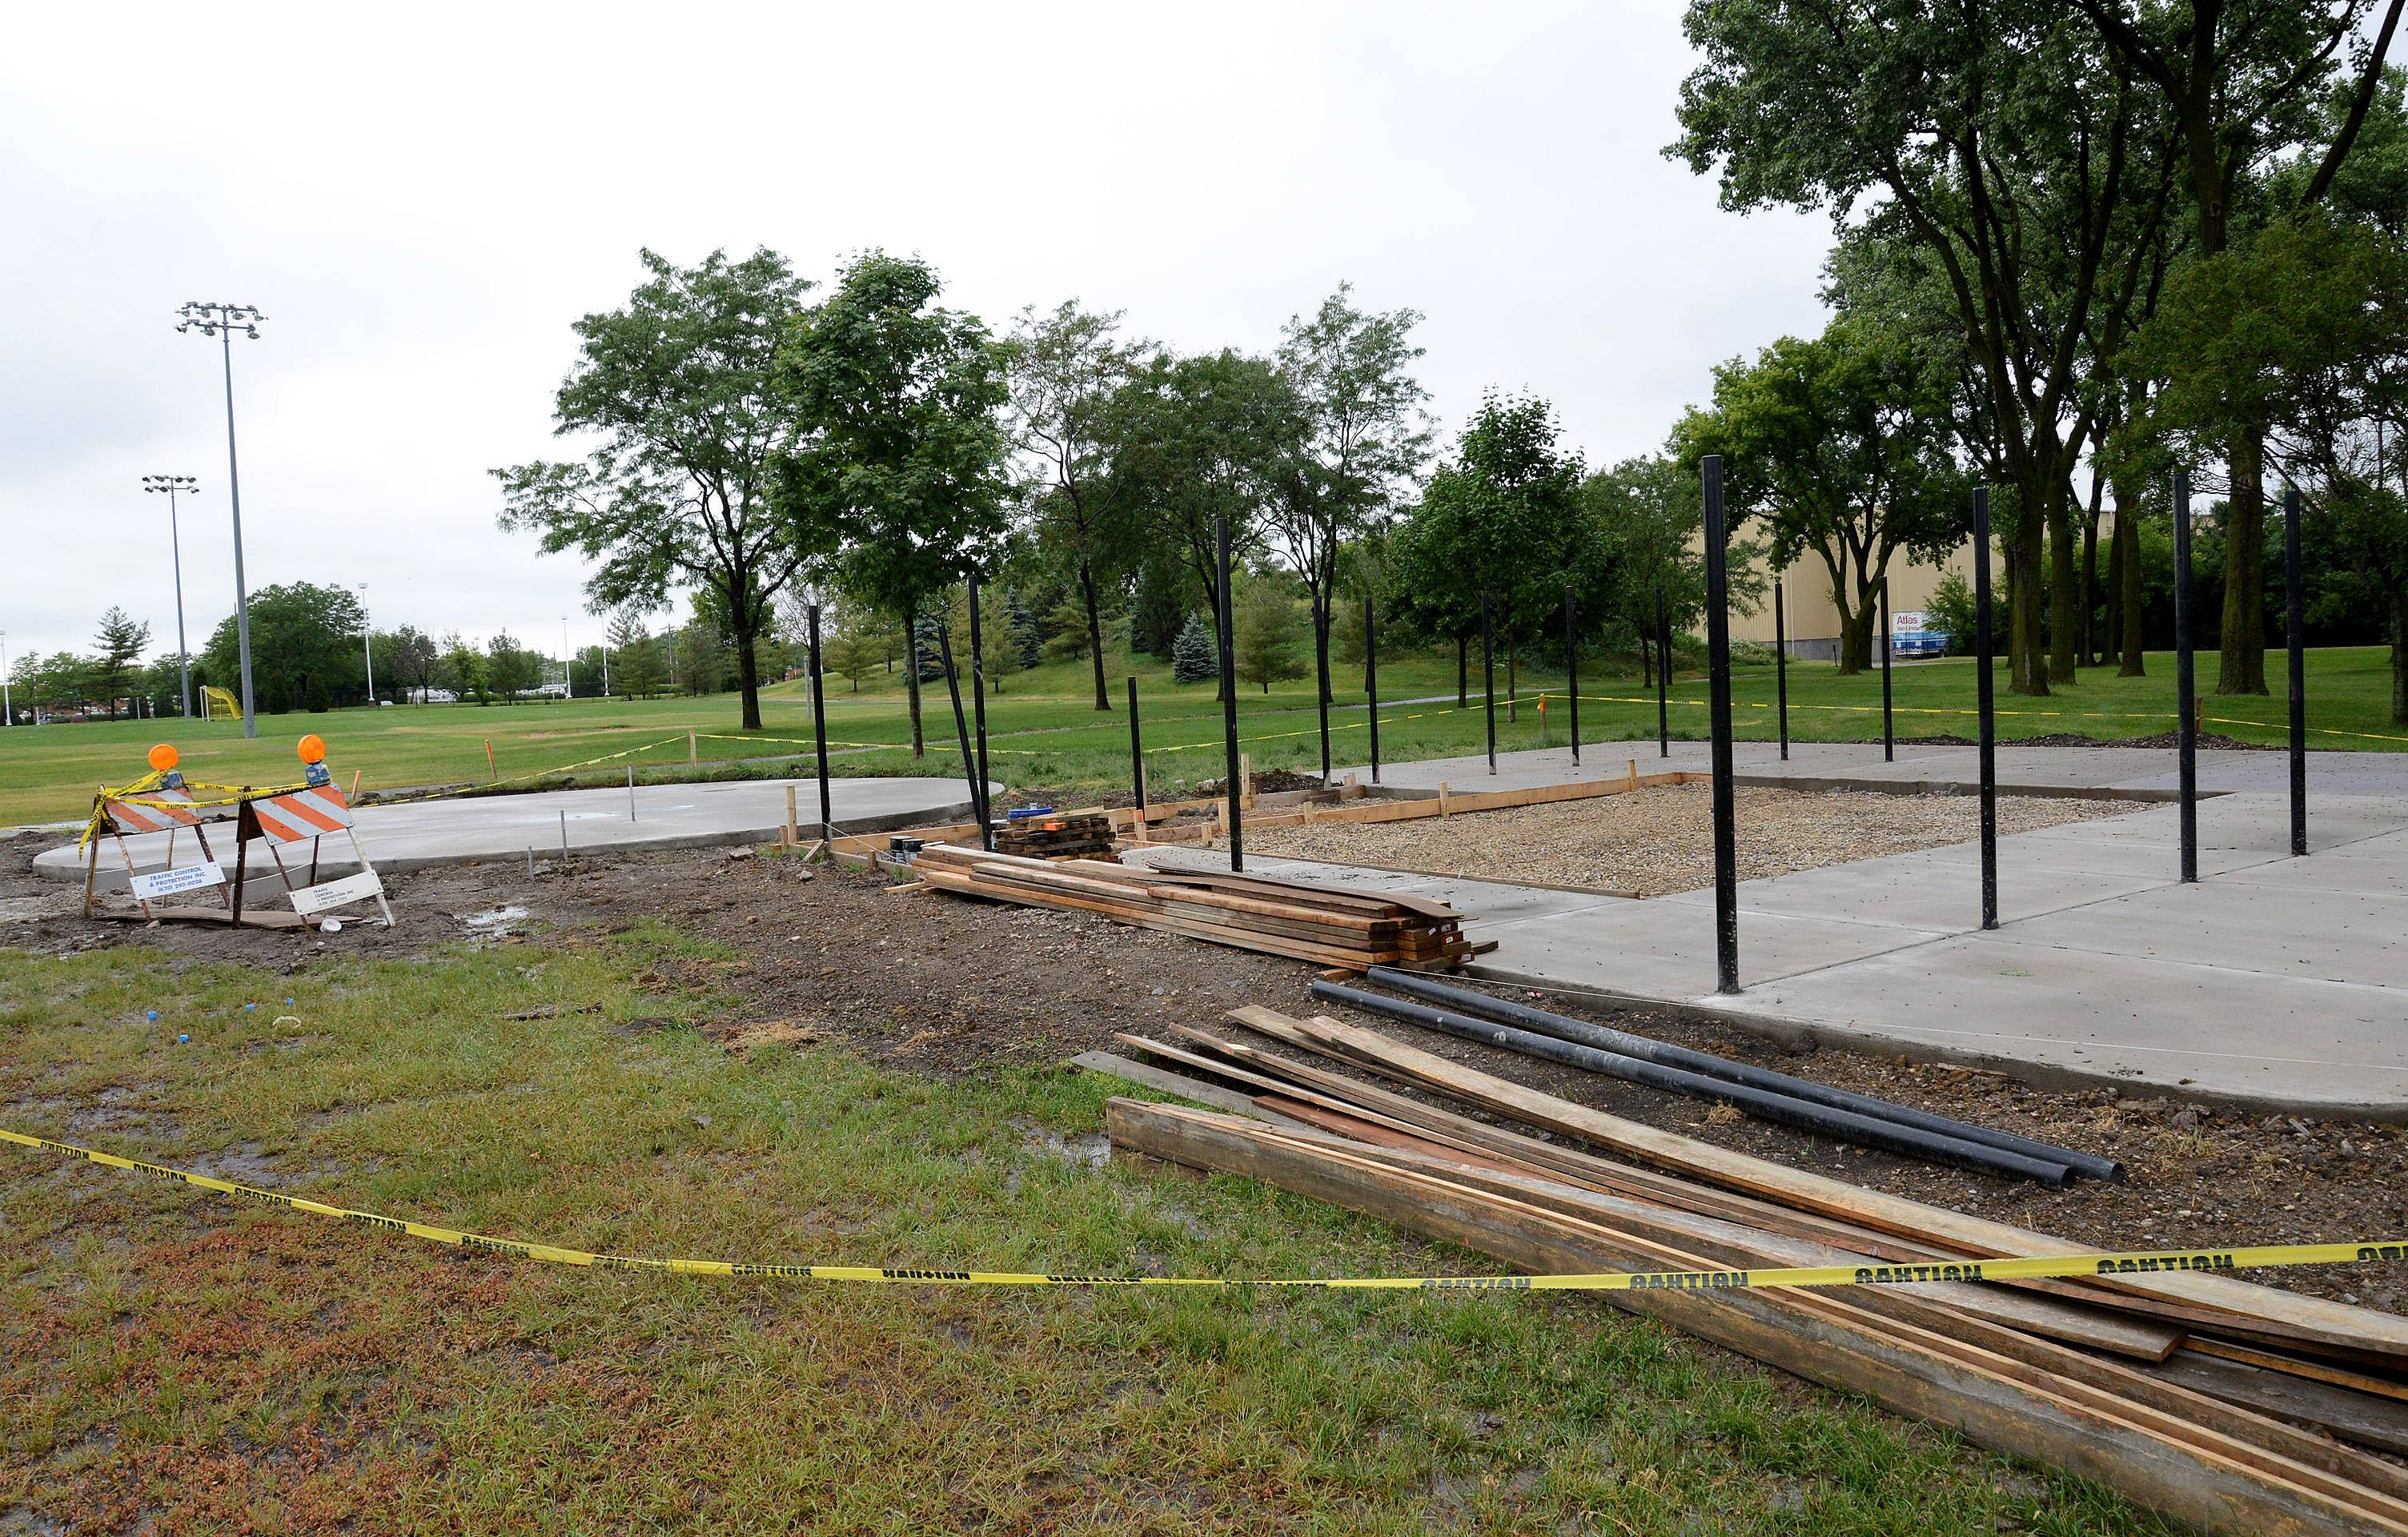 Officials say they're confident 99 percent of construction on the new dog park coming to Melas Park in Mount Prospect will be complete in time for a June 21 grand opening. The park is a joint project between the Arlington Heights and Mount Prospect park districts.